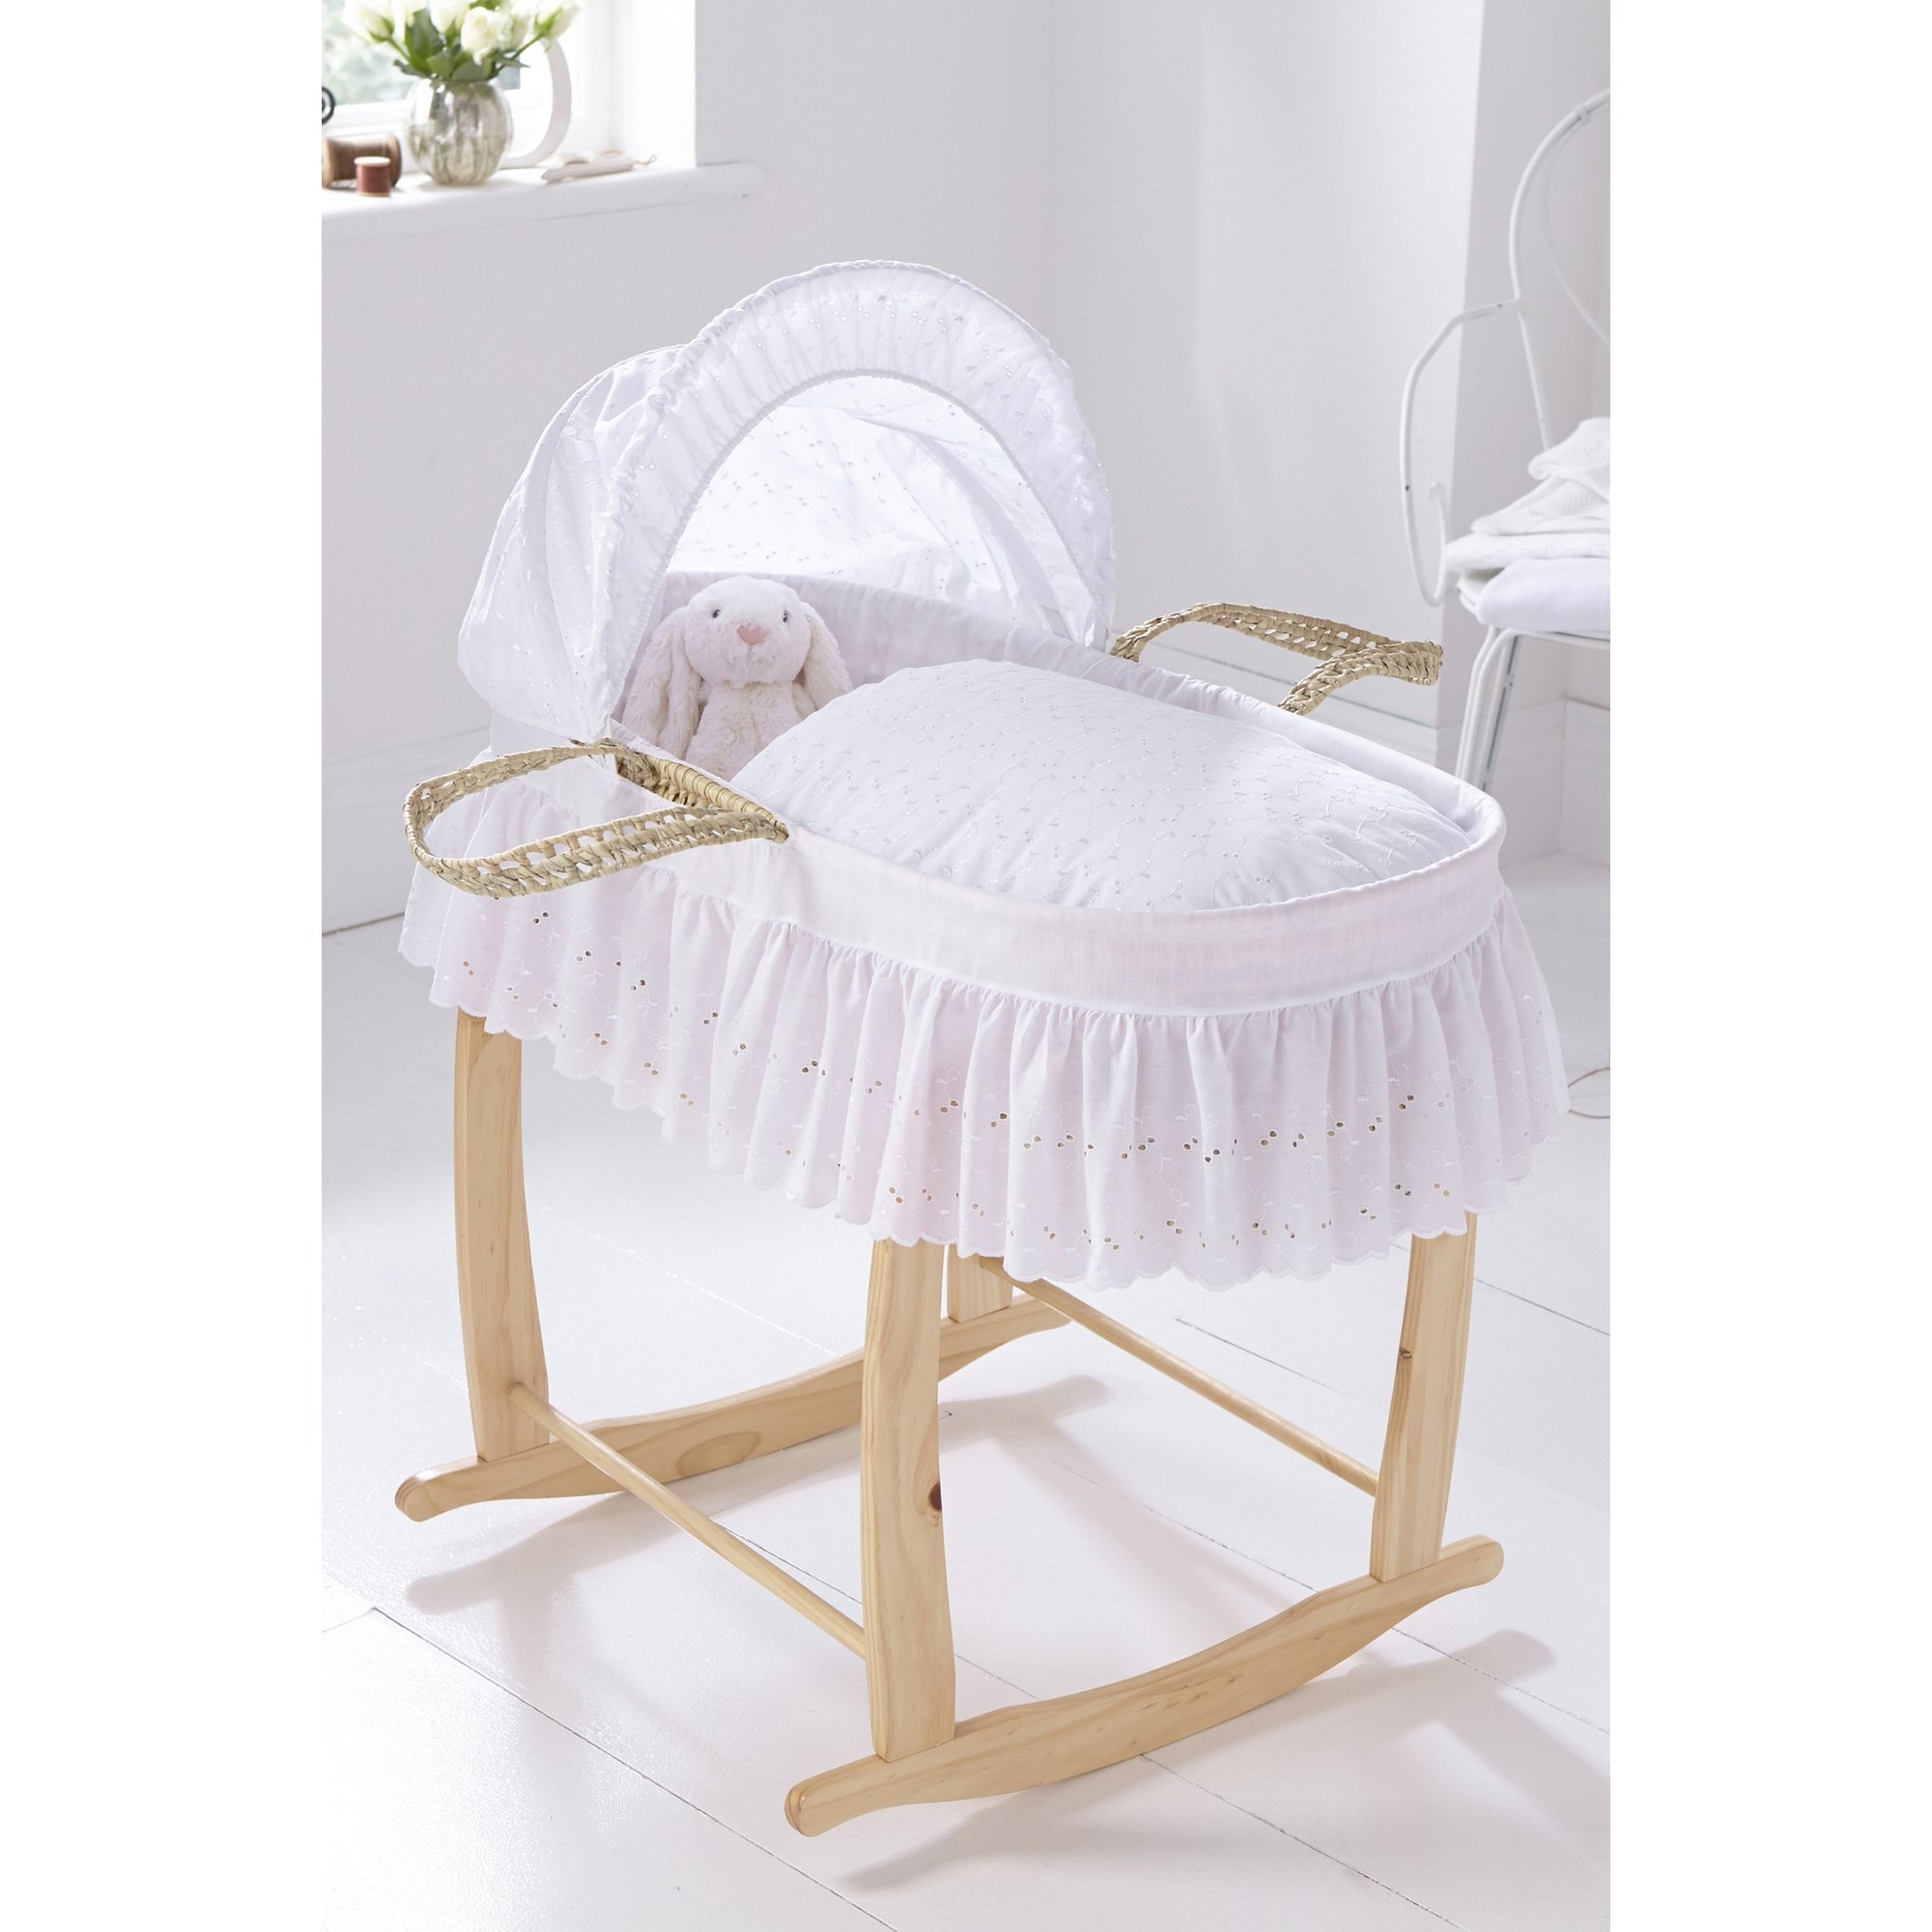 Image of Clair de Lune Broderie Anglaise Palm Moses Basket